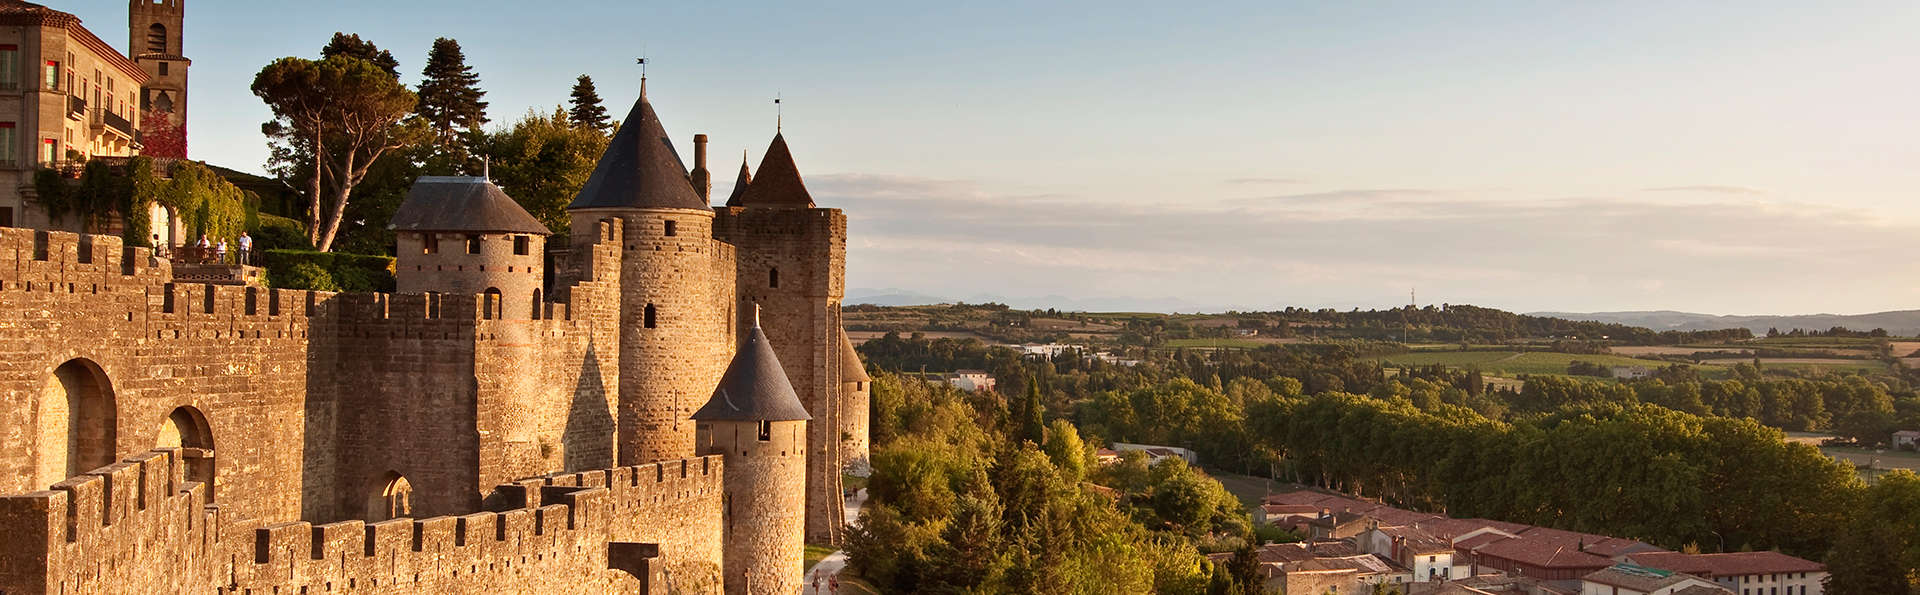 pont rouge carcassonne